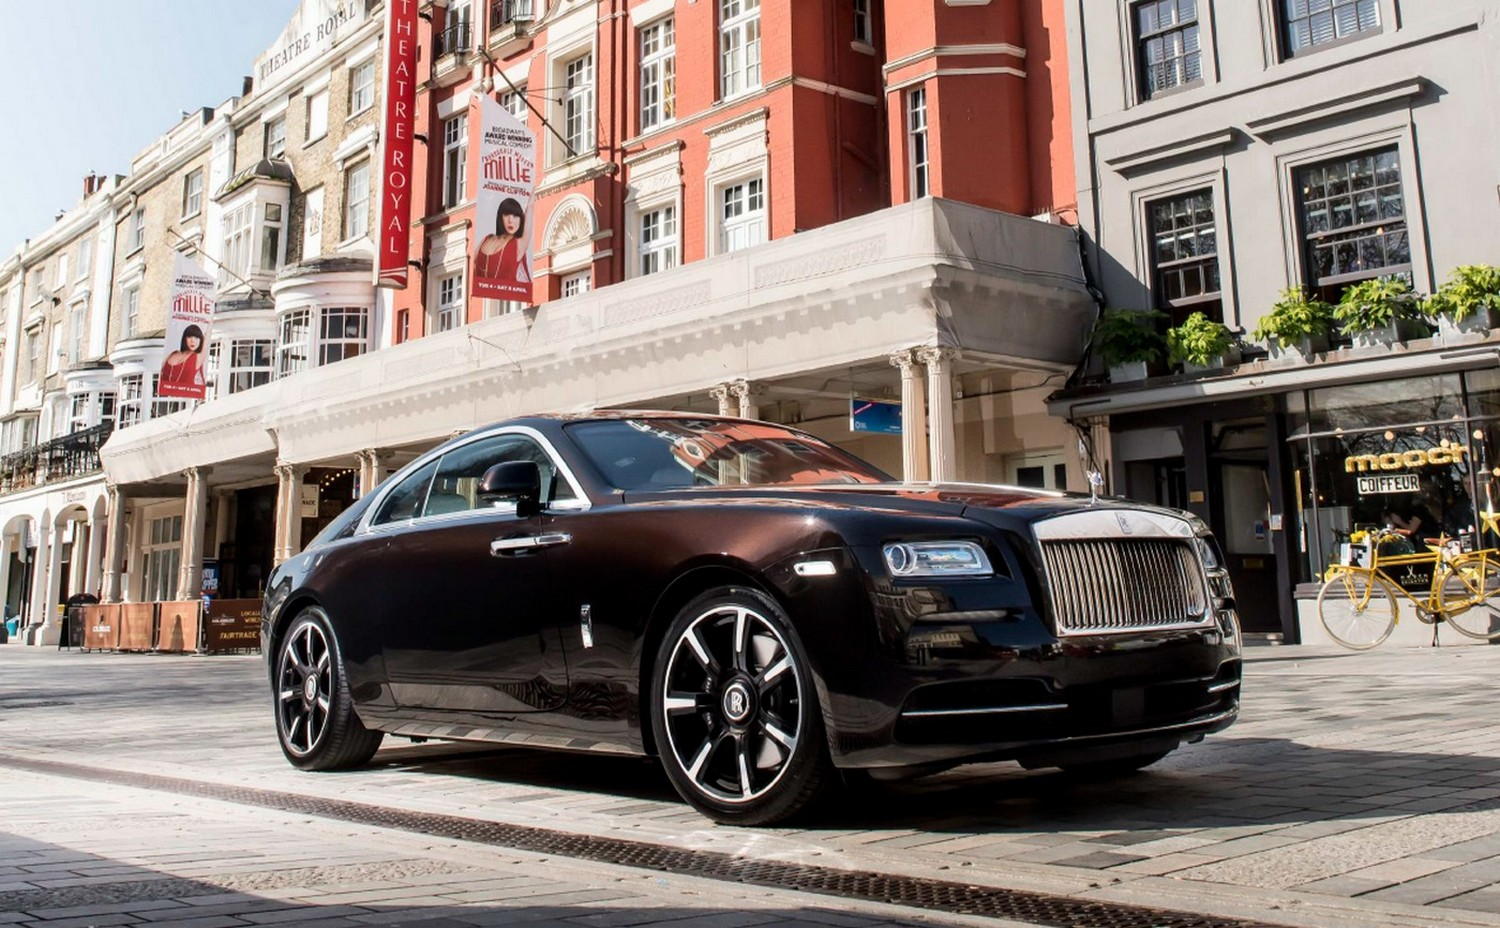 Bespoke Rolls-Royce Wraith commissioned by legendary singer Roger Daltrey goes on display